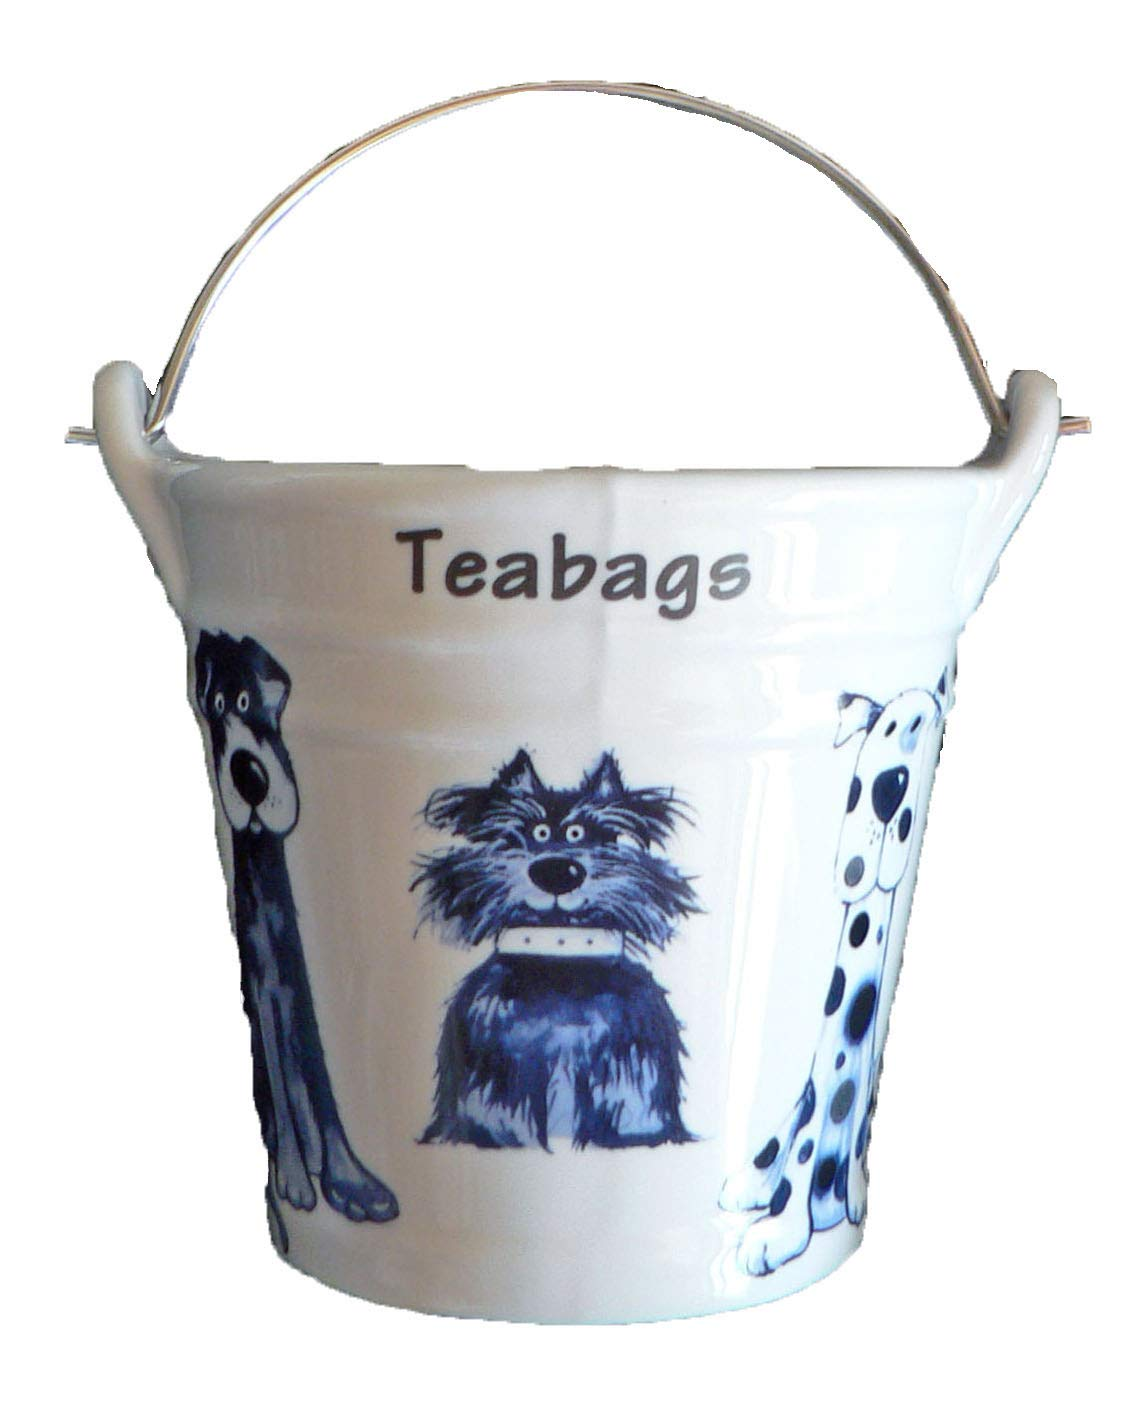 Dogs (Blue Dogs) Design Bucket Teabag Tidy, Porcelain Bucket Teabag Tidy crackinchina